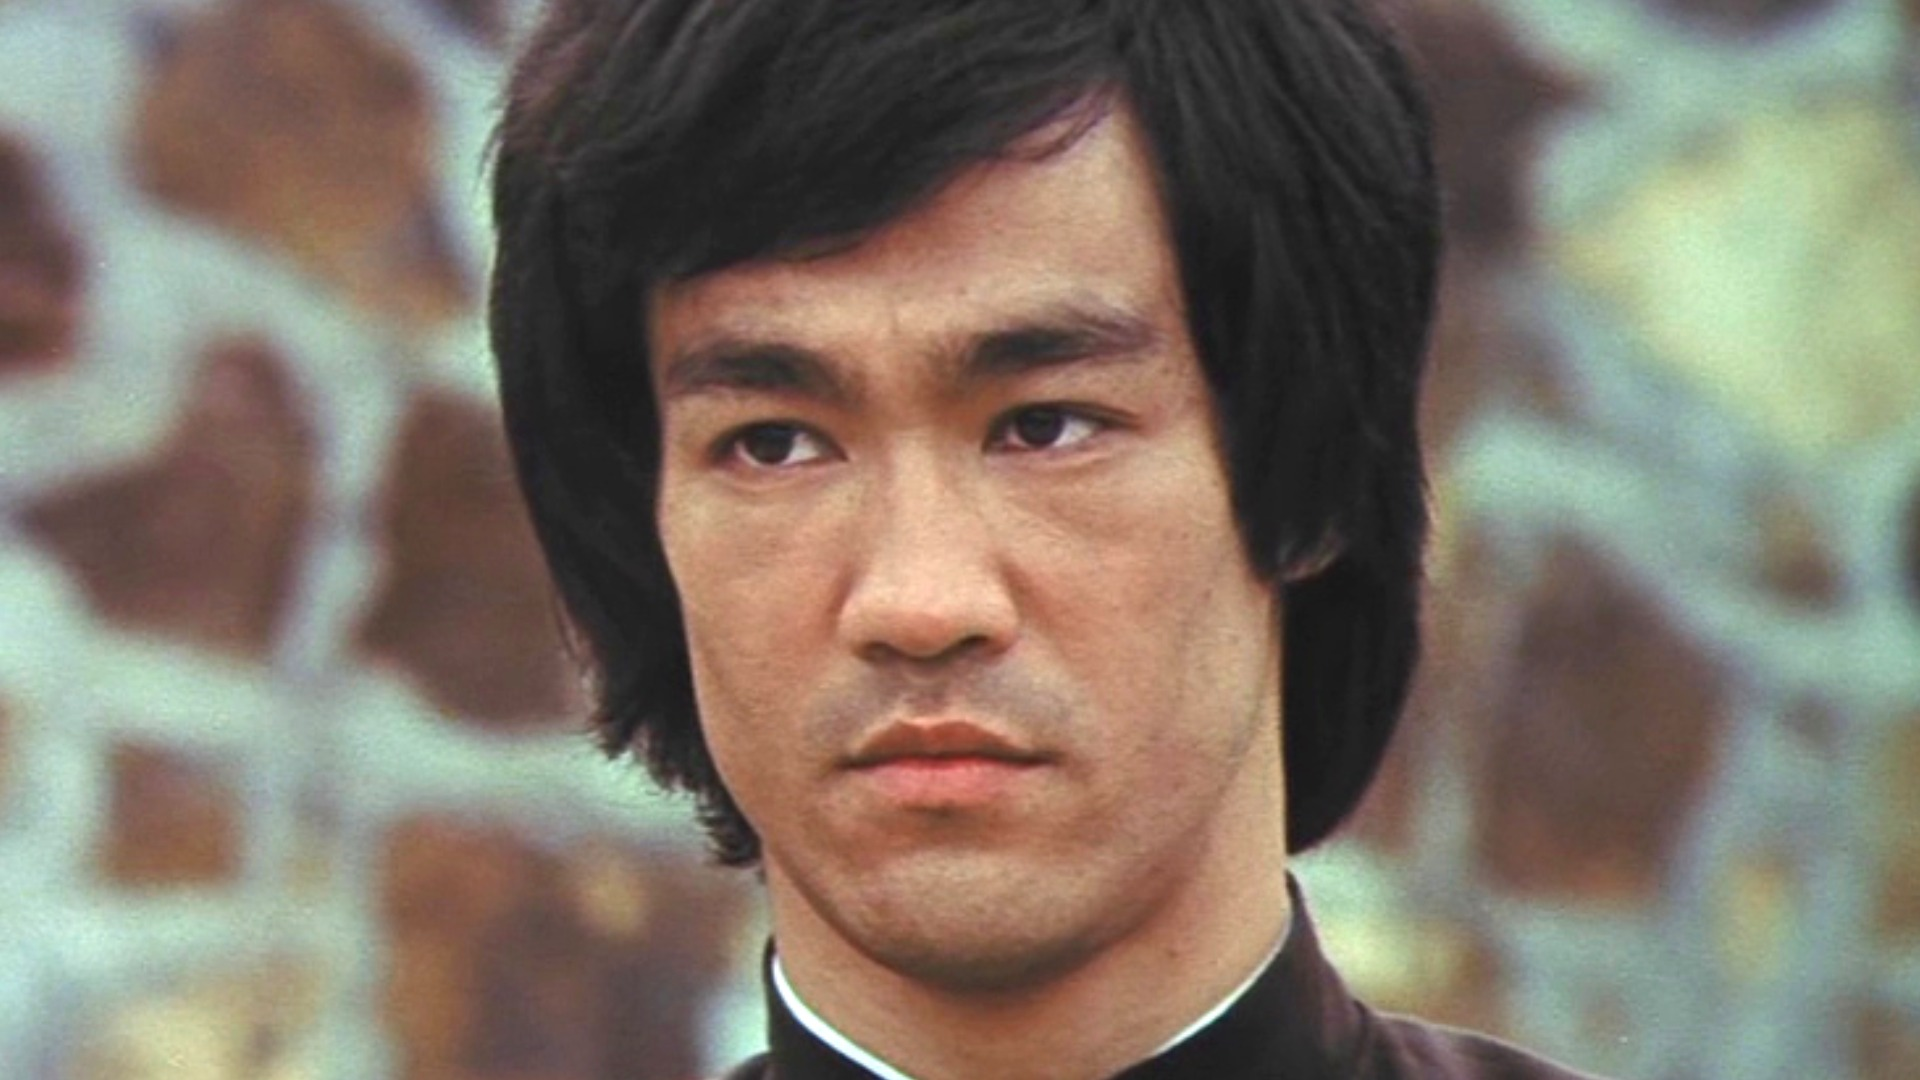 The Sad Truth Behind Bruce Lee's Tragic Death